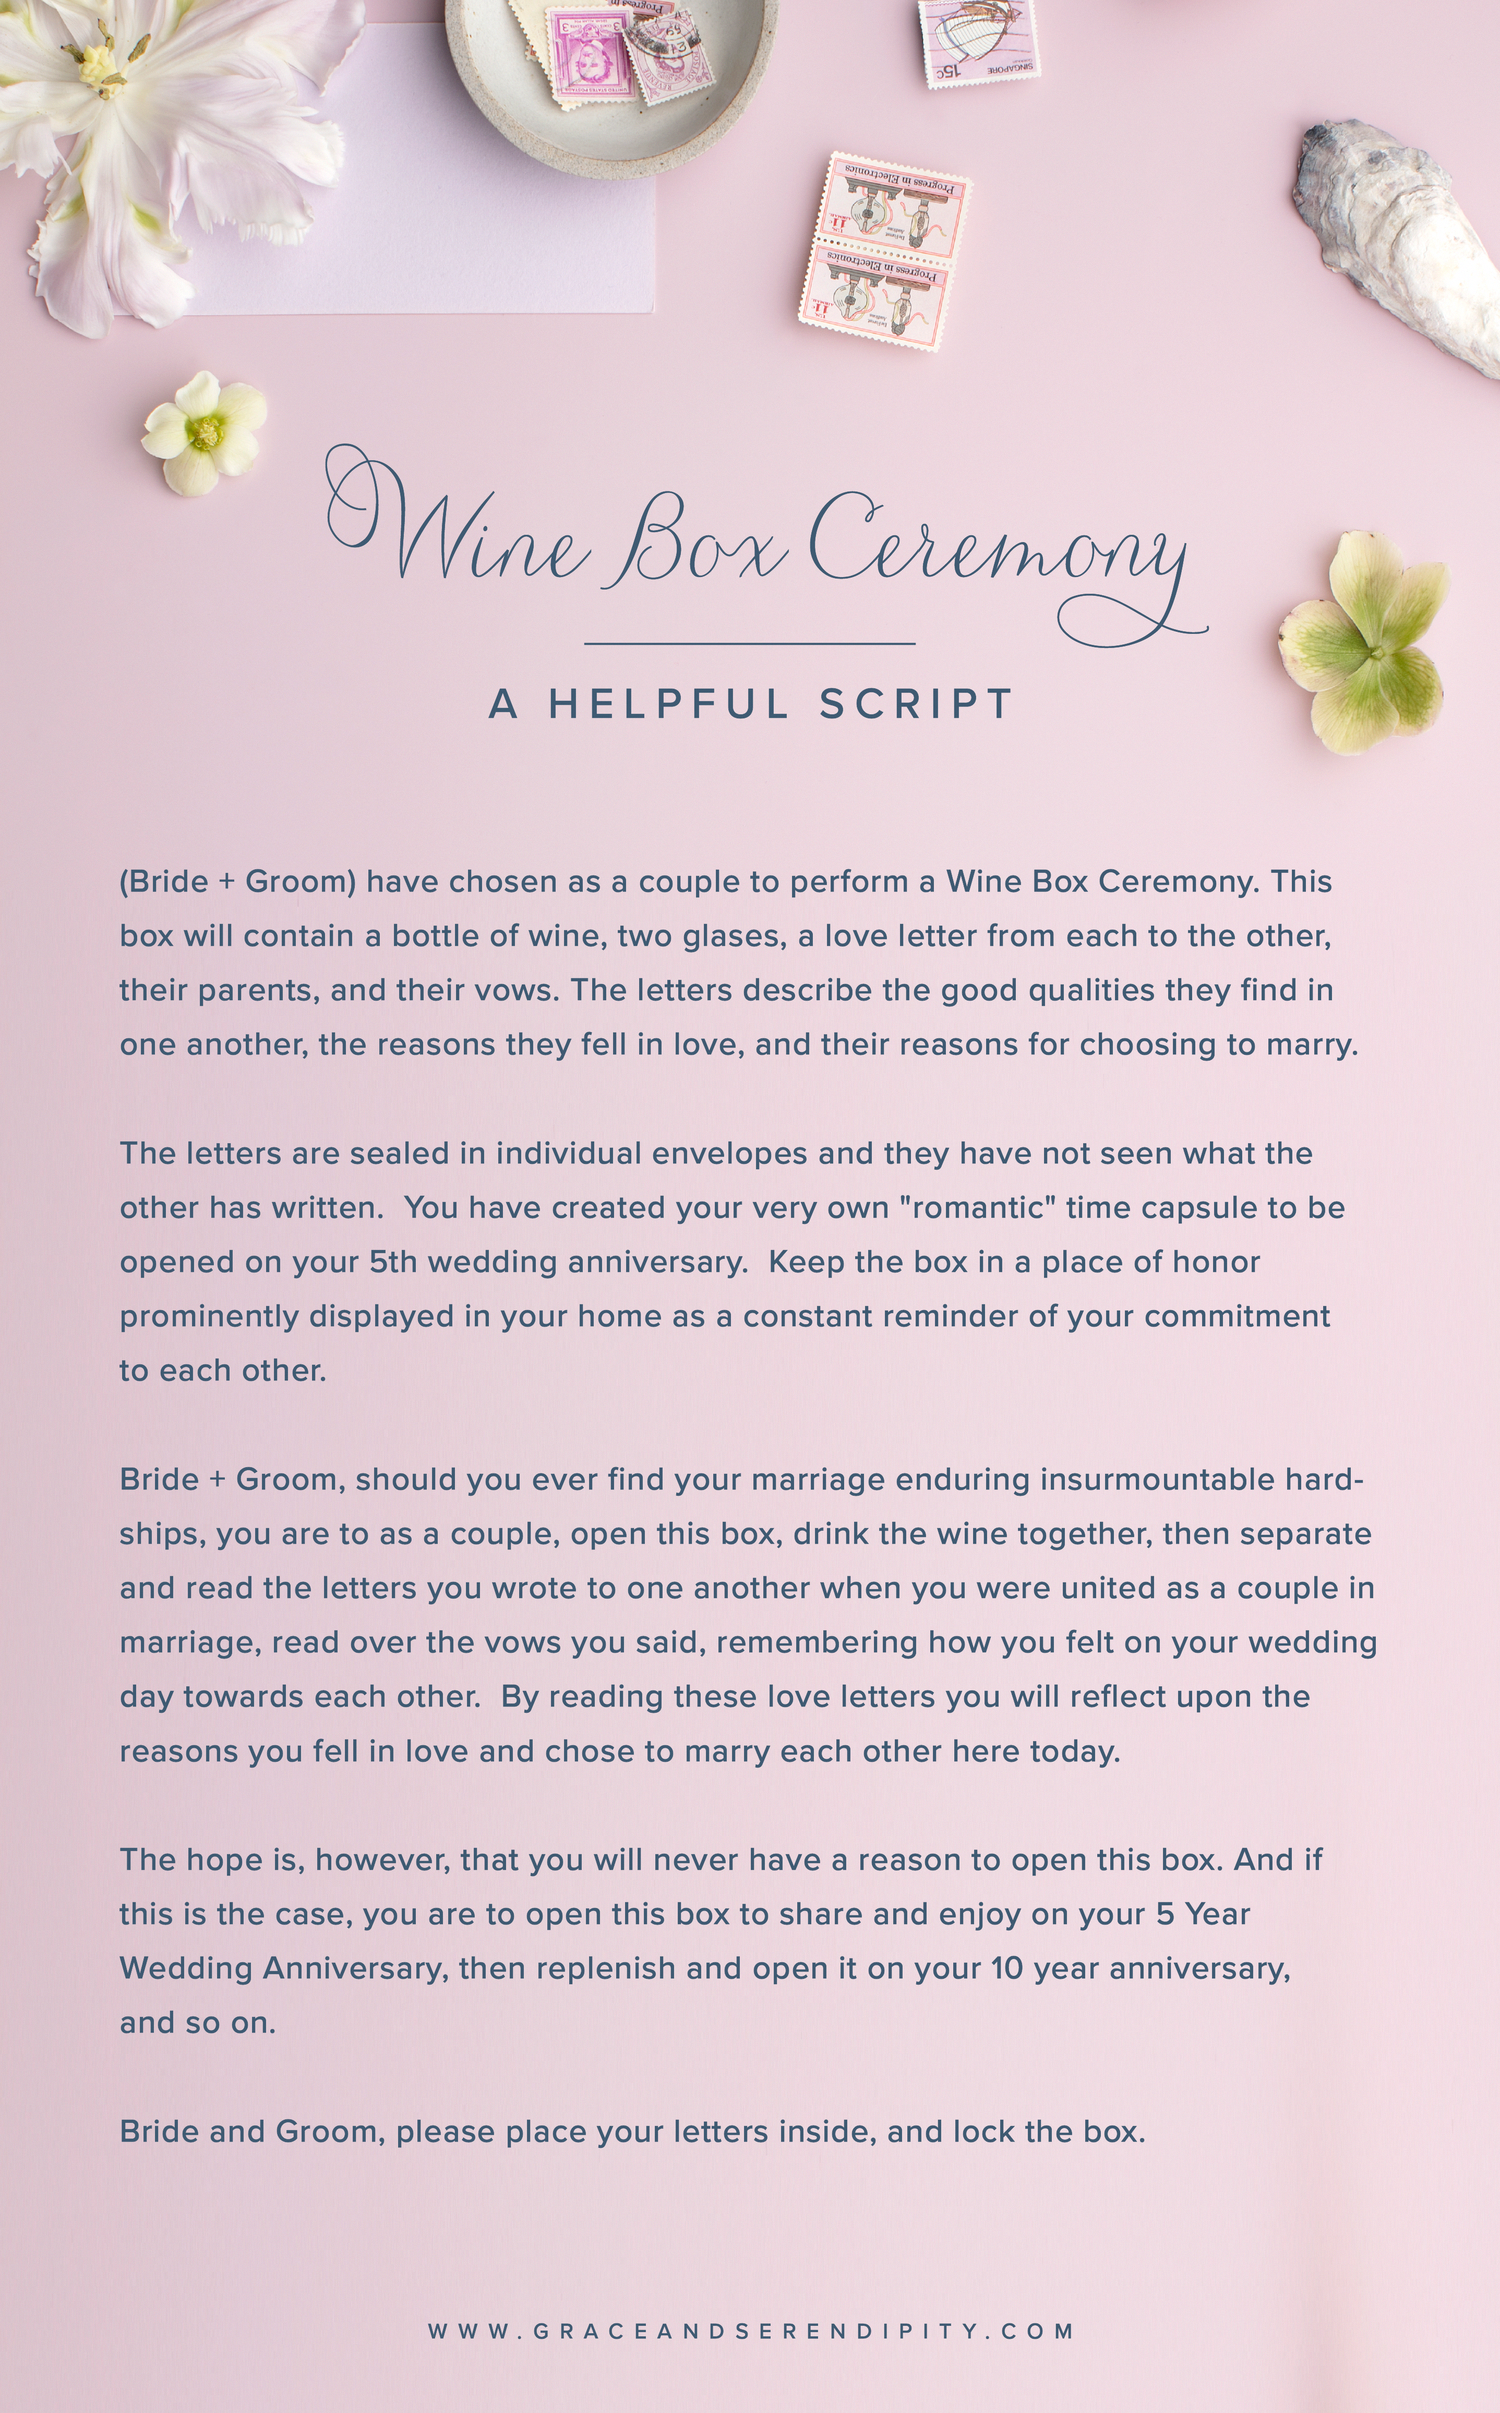 Unique Weddings Unearth This Quite Exquisite Wedding Pin Image Reference 2315574606 Here U Wine Box Ceremony Wedding Wine Box Ceremony Wedding Wine Ceremony